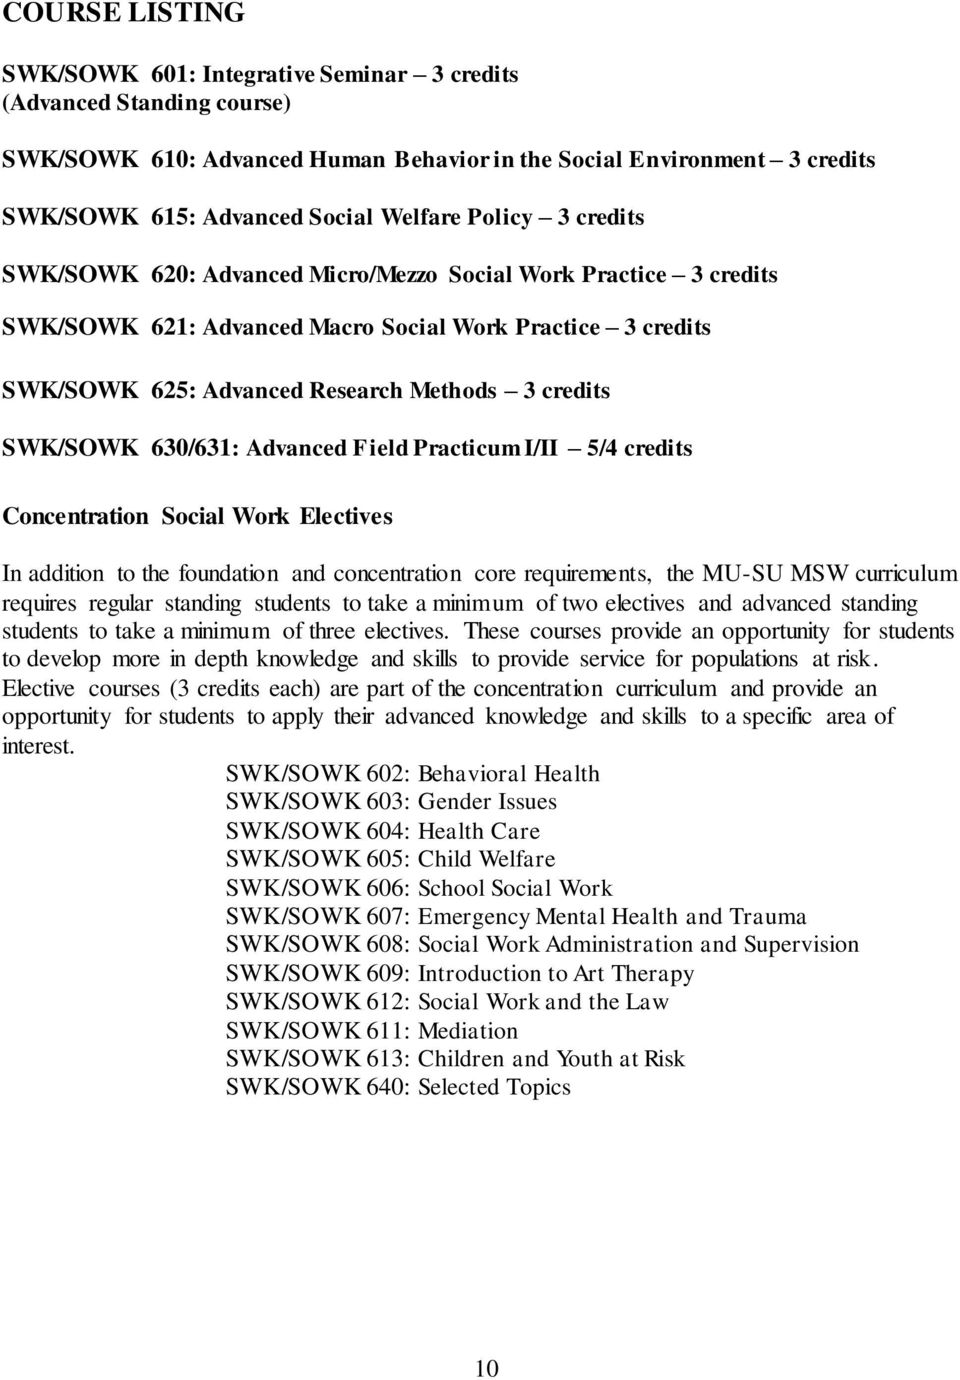 SWK/SOWK 630/631: Advanced Field Practicum I/II 5/4 credits Concentration Social Work Electives In addition to the foundation and concentration core requirements, the MU-SU MSW curriculum requires